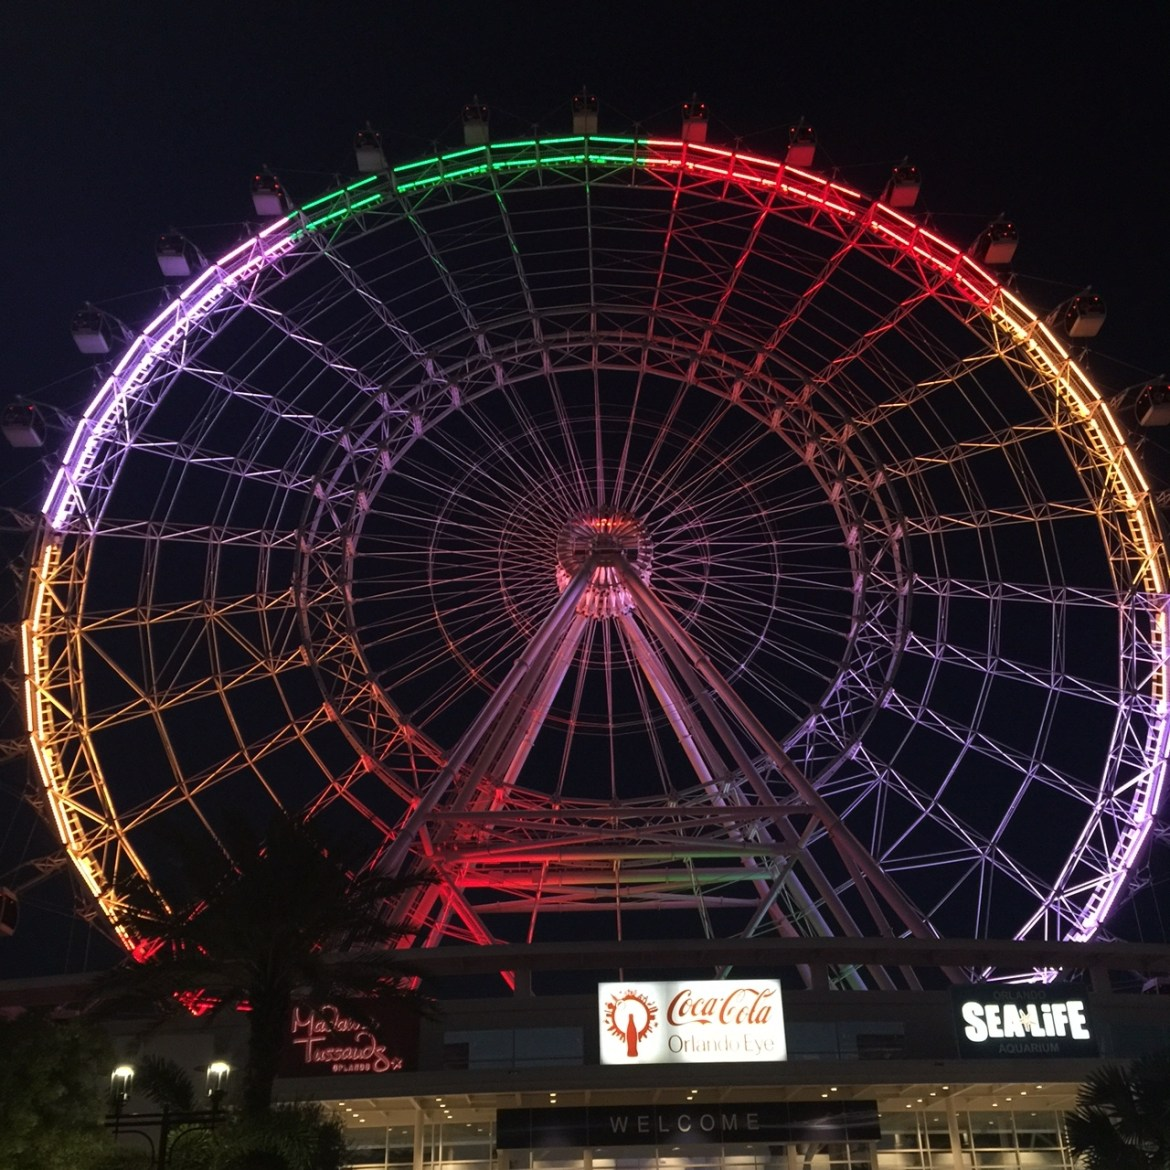 Things to do in Orlando with kids | Idrive 360 with kids | things to do on I-Drive | International Drive | Orlando Eye | #EyeHeartOrlando | family travel | acupful.com | Mandy Carter | travel with kids | Coca Cola Orlando Eye